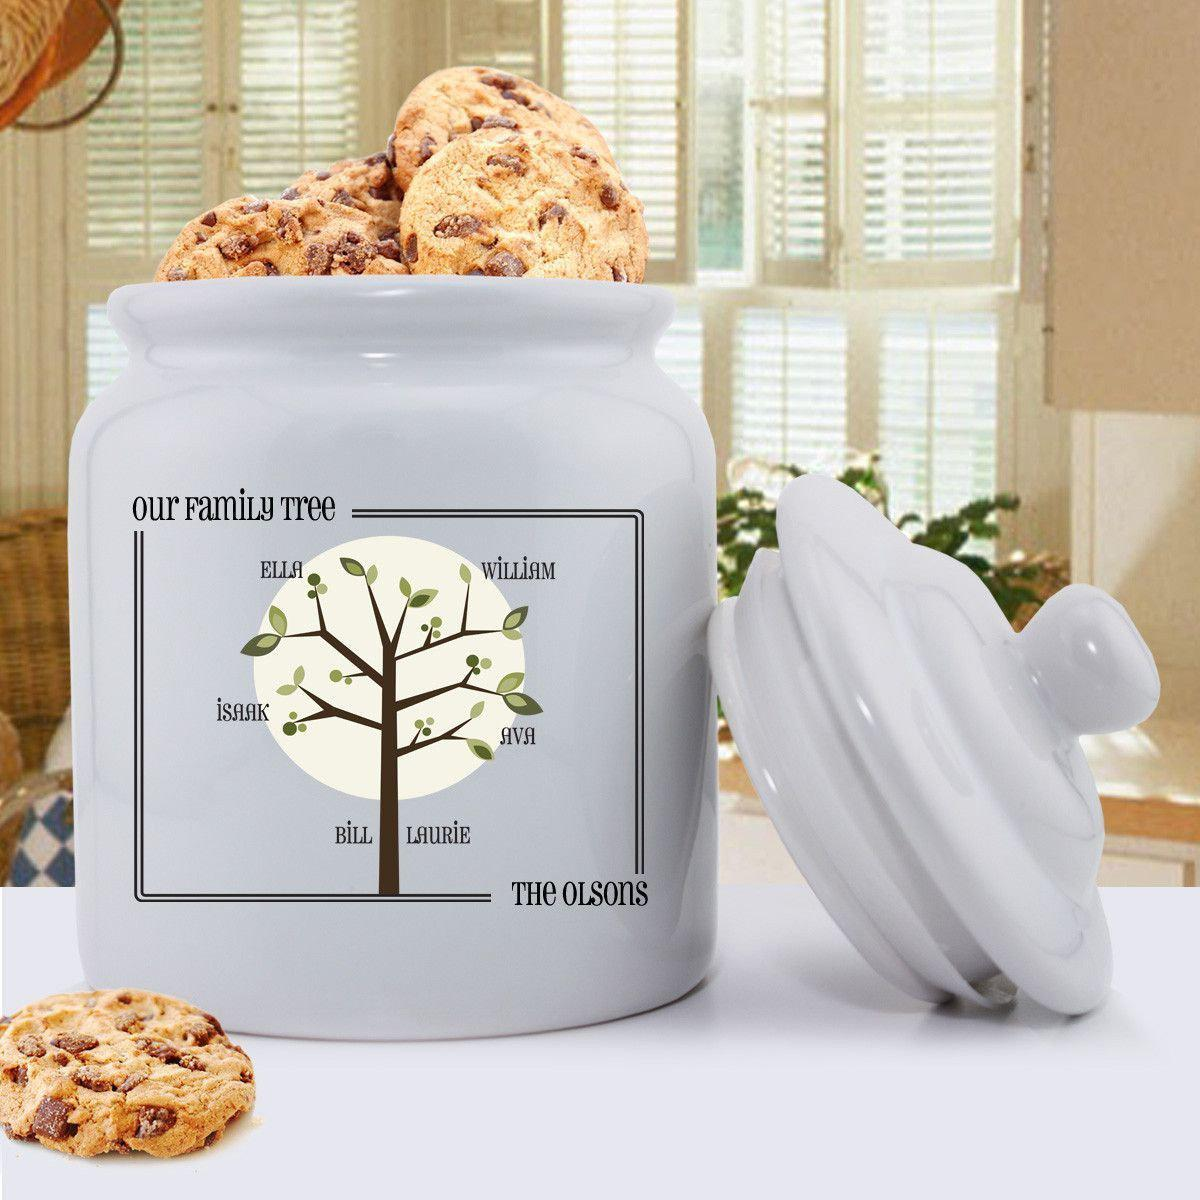 Personalized-Family-Tree-Cookie-Jar-Modern-and-Traditional-Designs